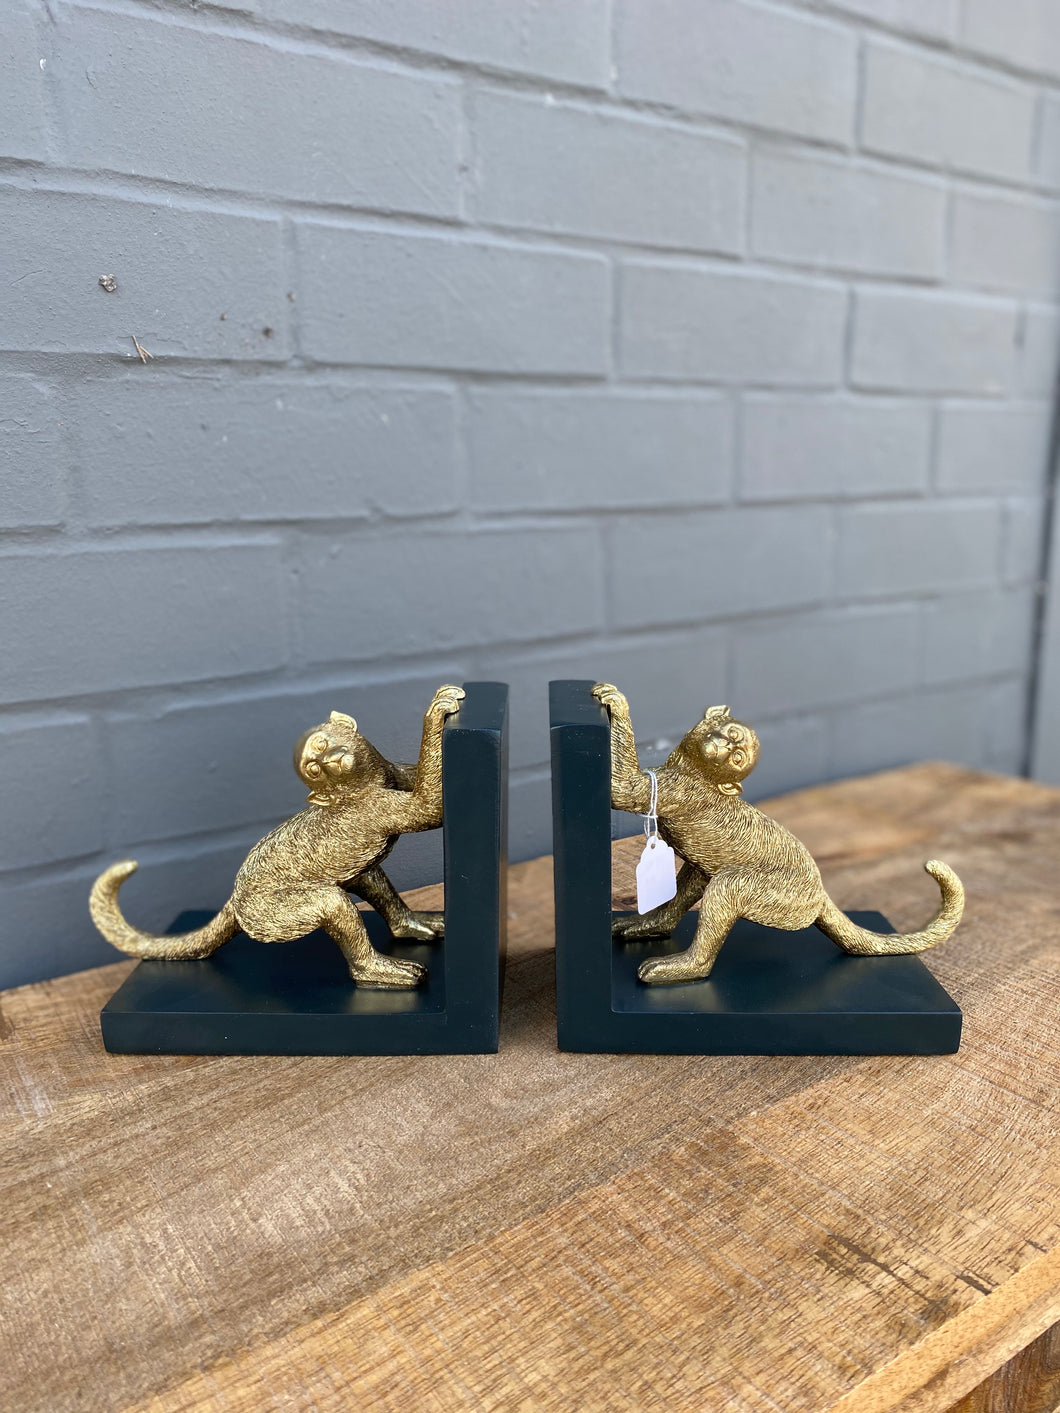 Monkey Bookends 🐒